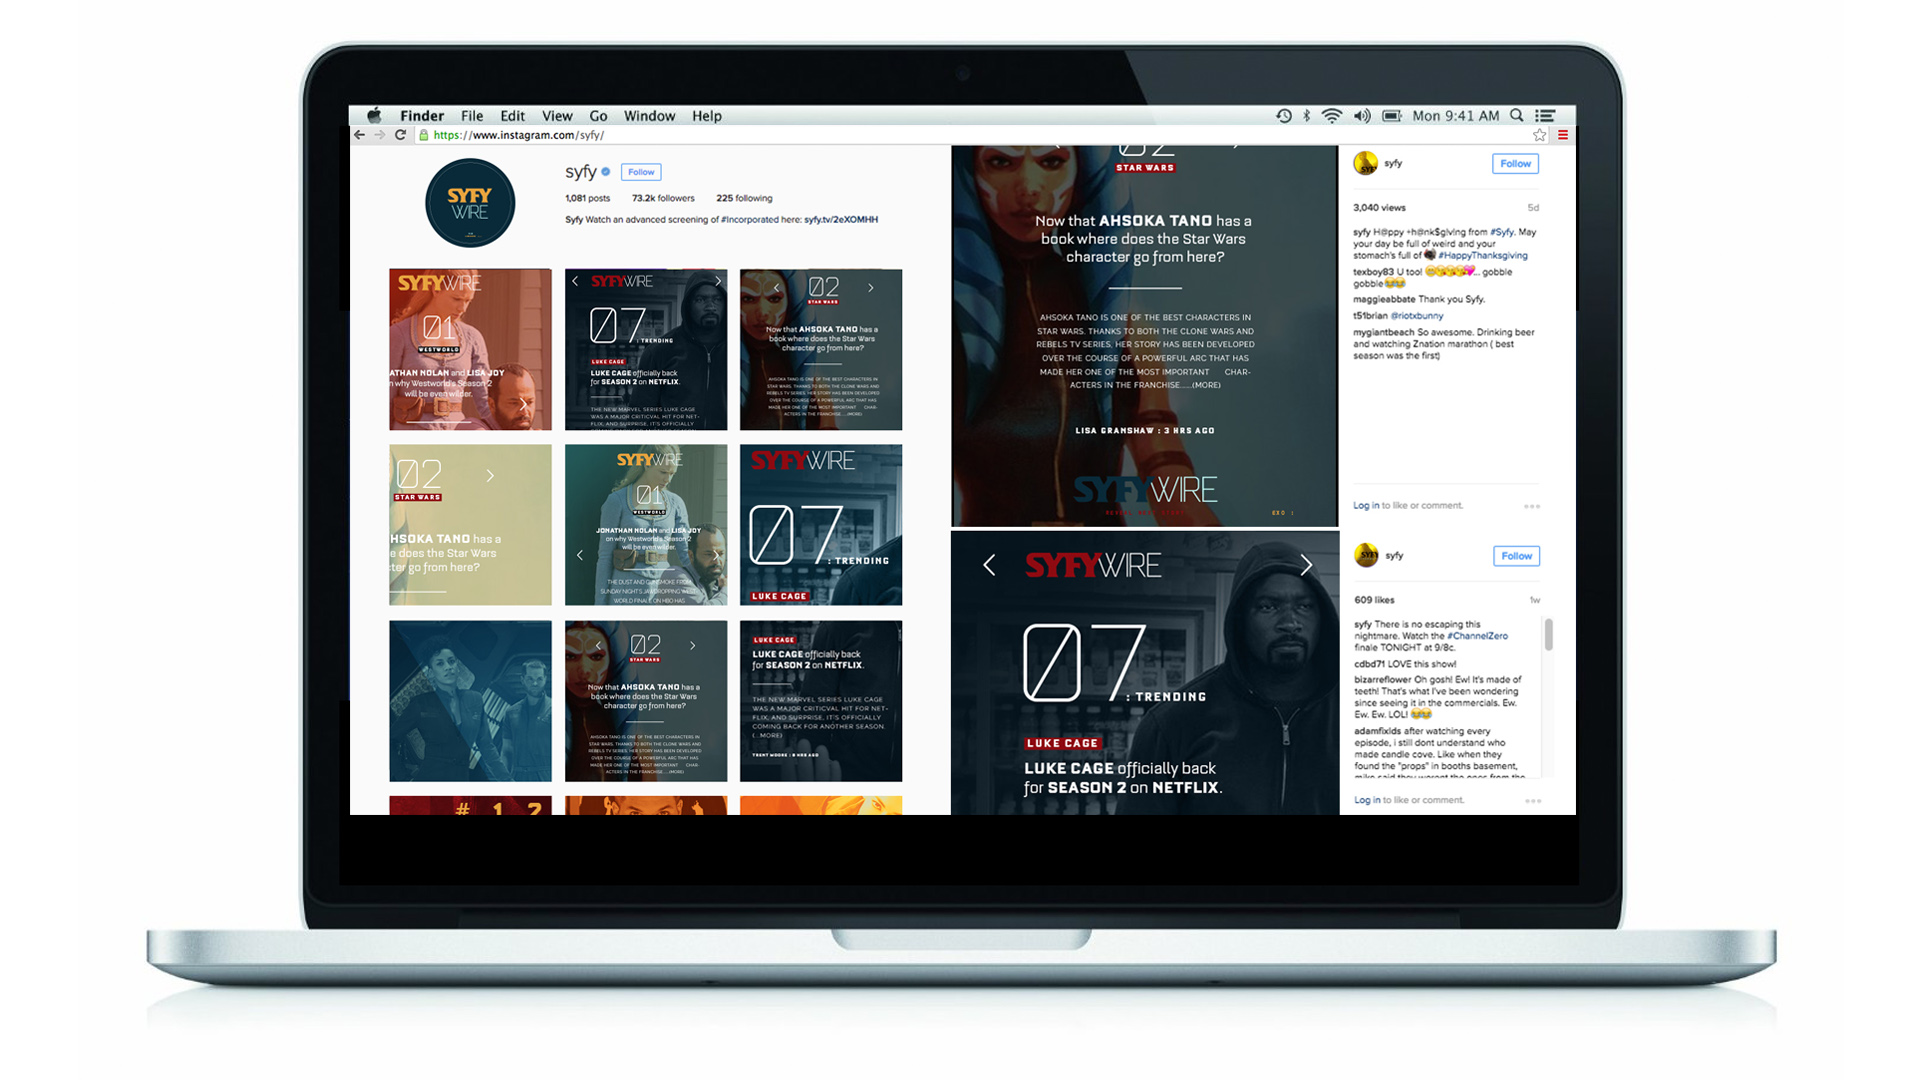 gh_LK_SyFyWire-3rdparty_Instagram-Layout-A.jpg